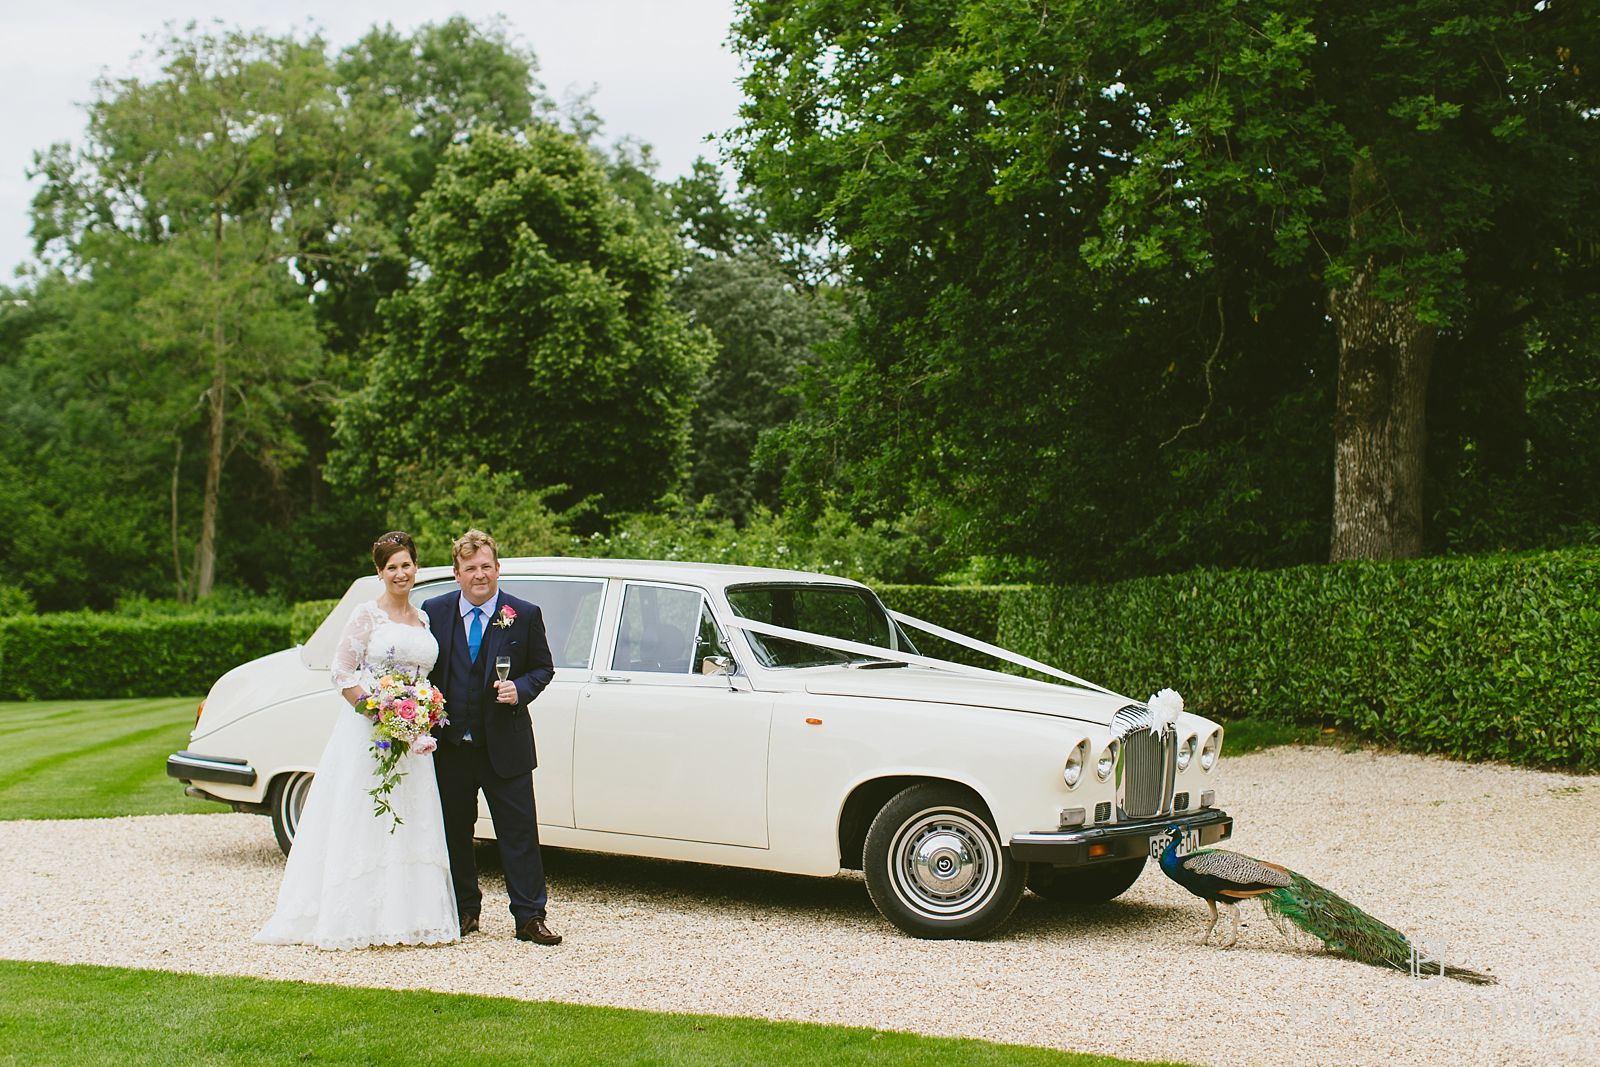 Wedding car bride and groom portrait